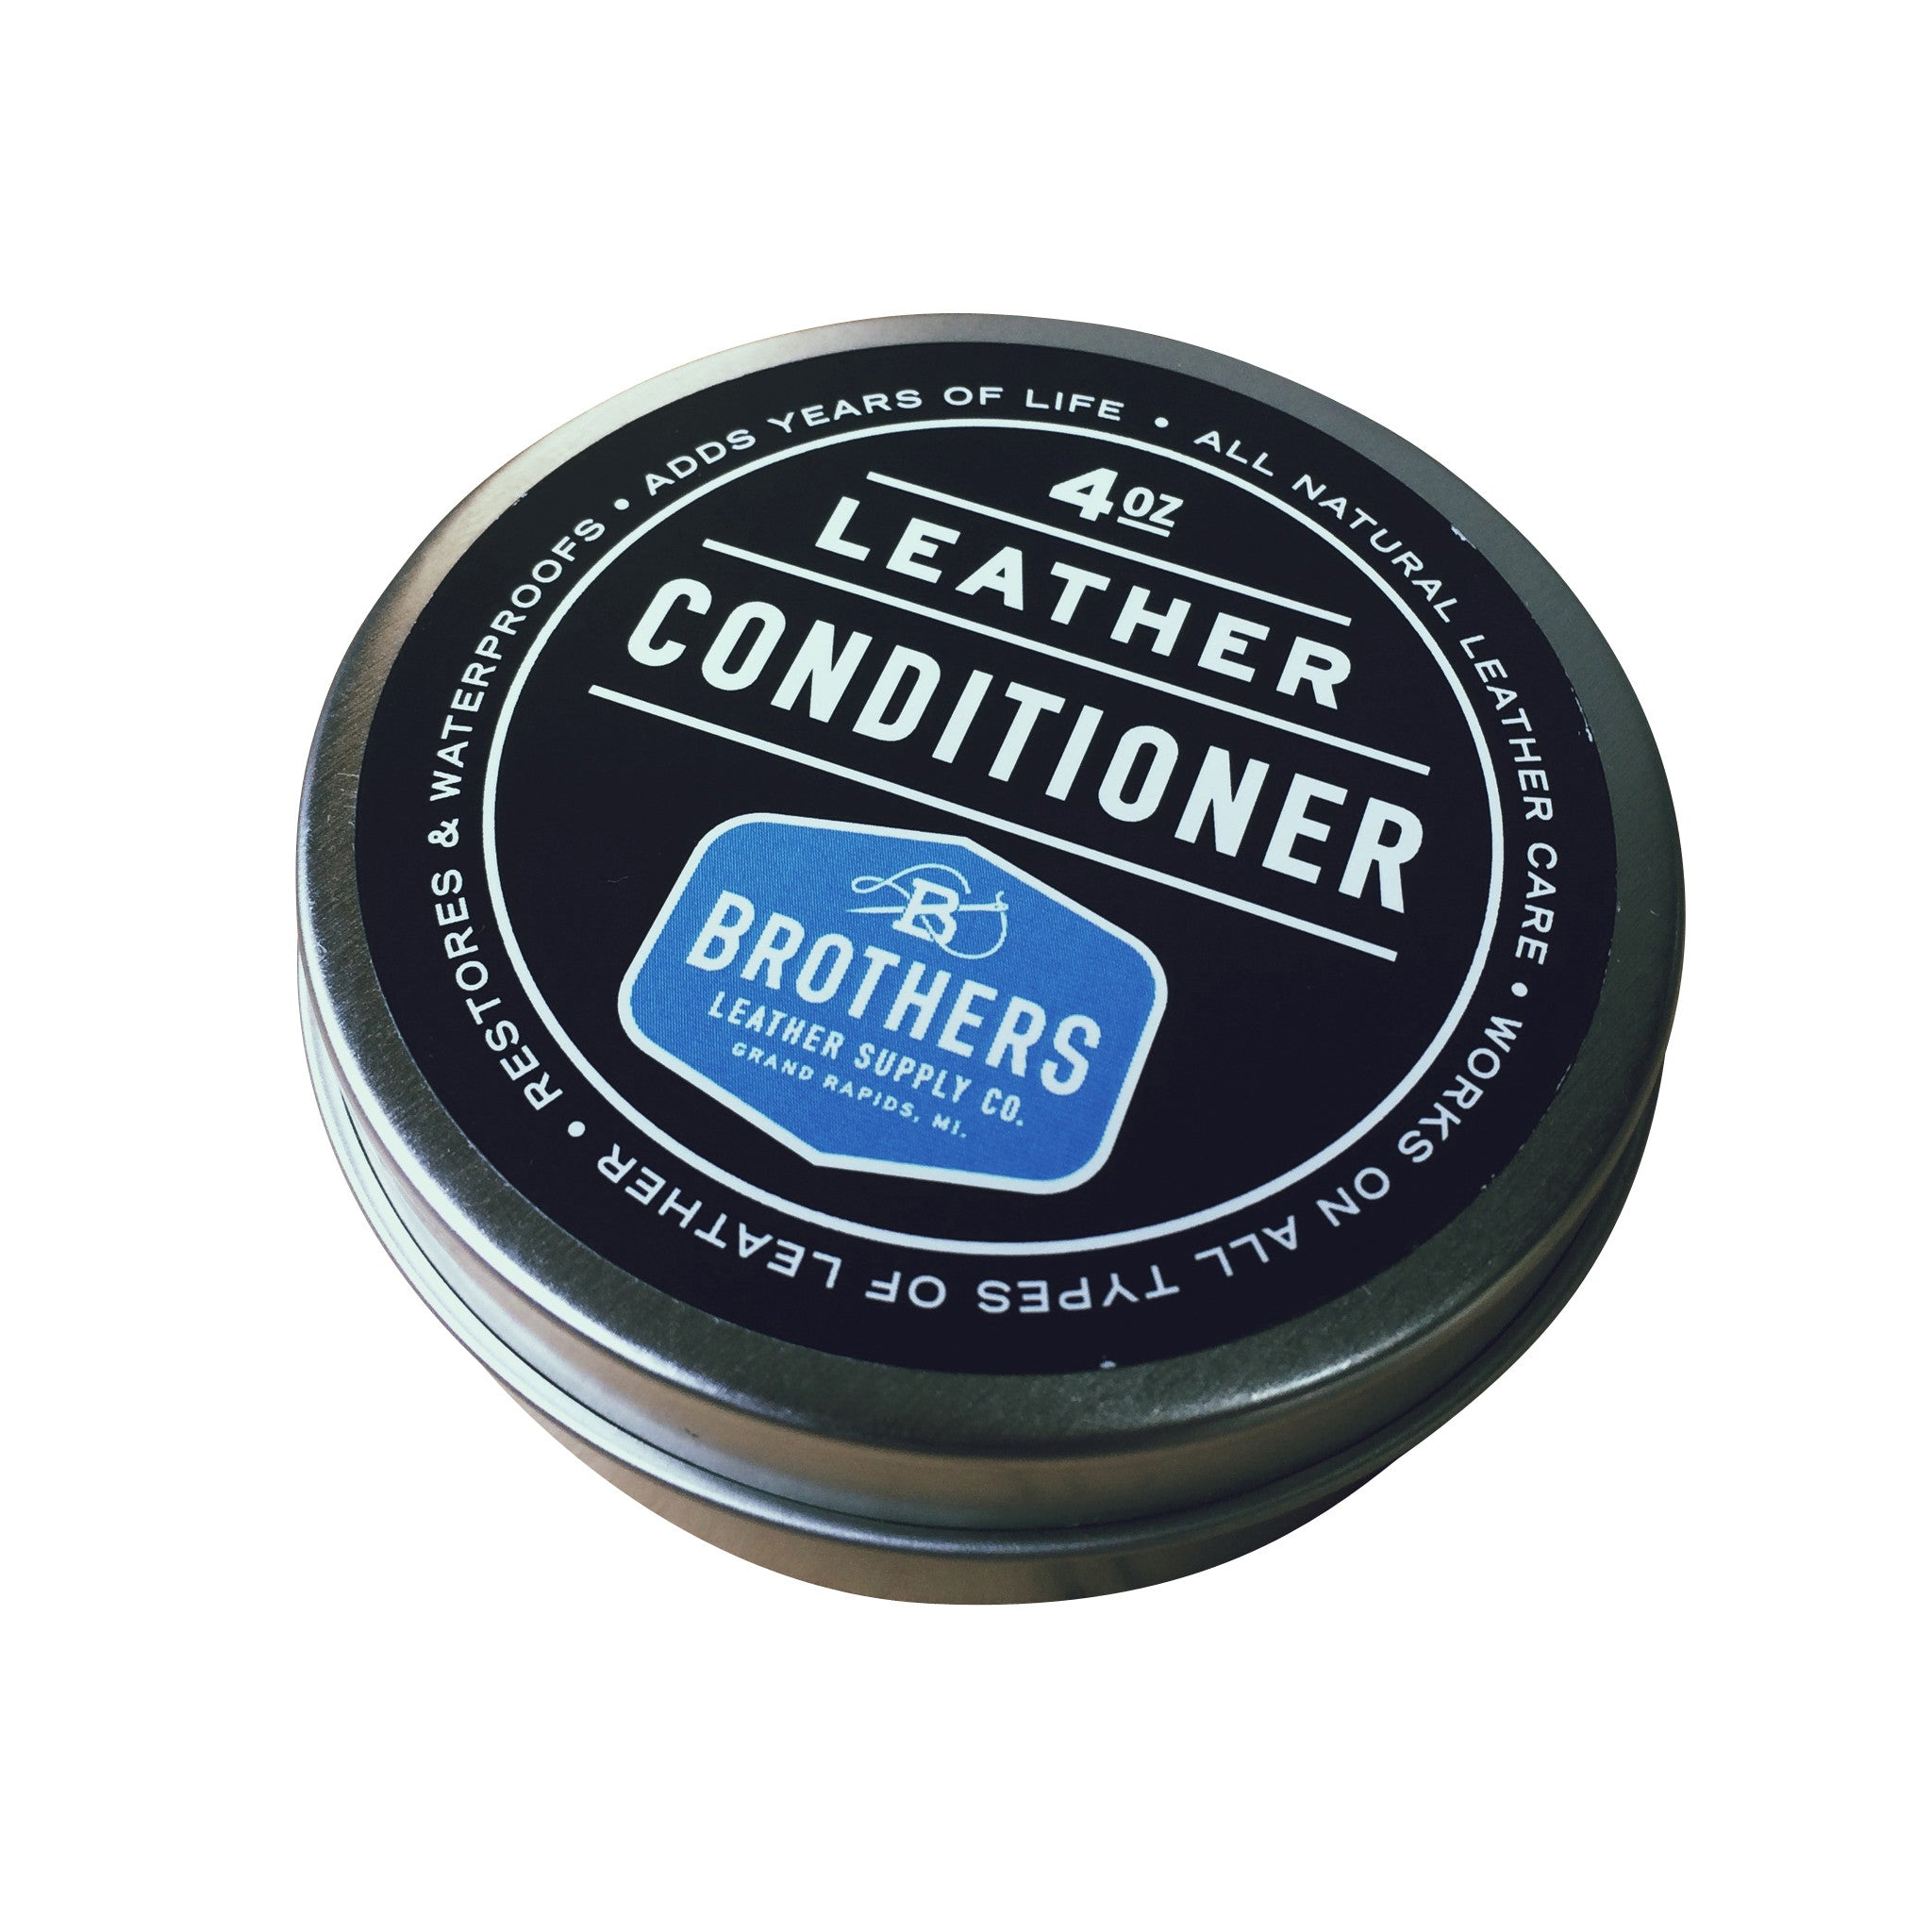 Brothers Leather Conditioner - Brothers Leather Supply Co.